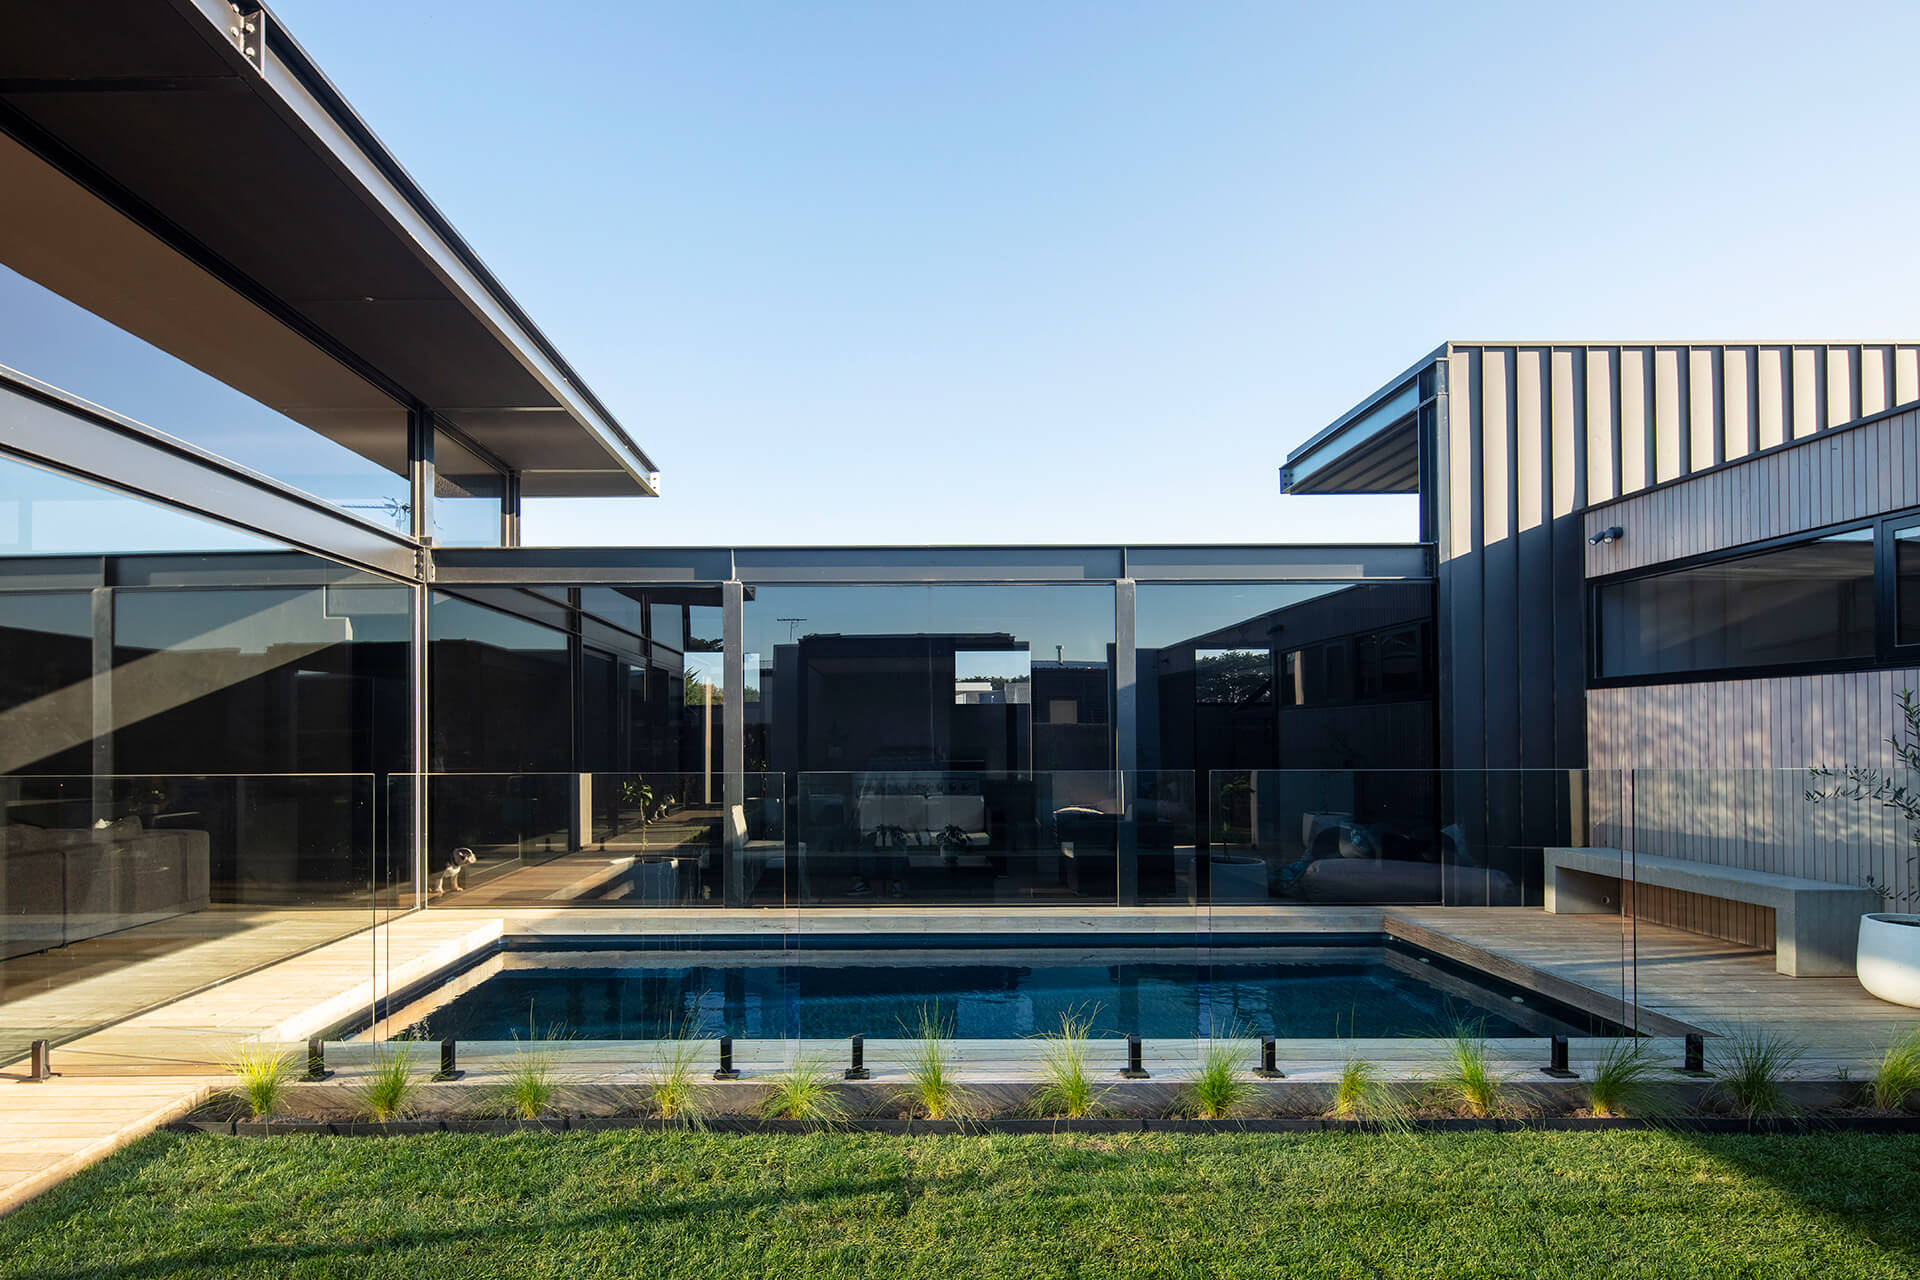 The swimming pool and the exterior material façade | Cashmore House | Lachlan Shepherd Architects | STIRworld